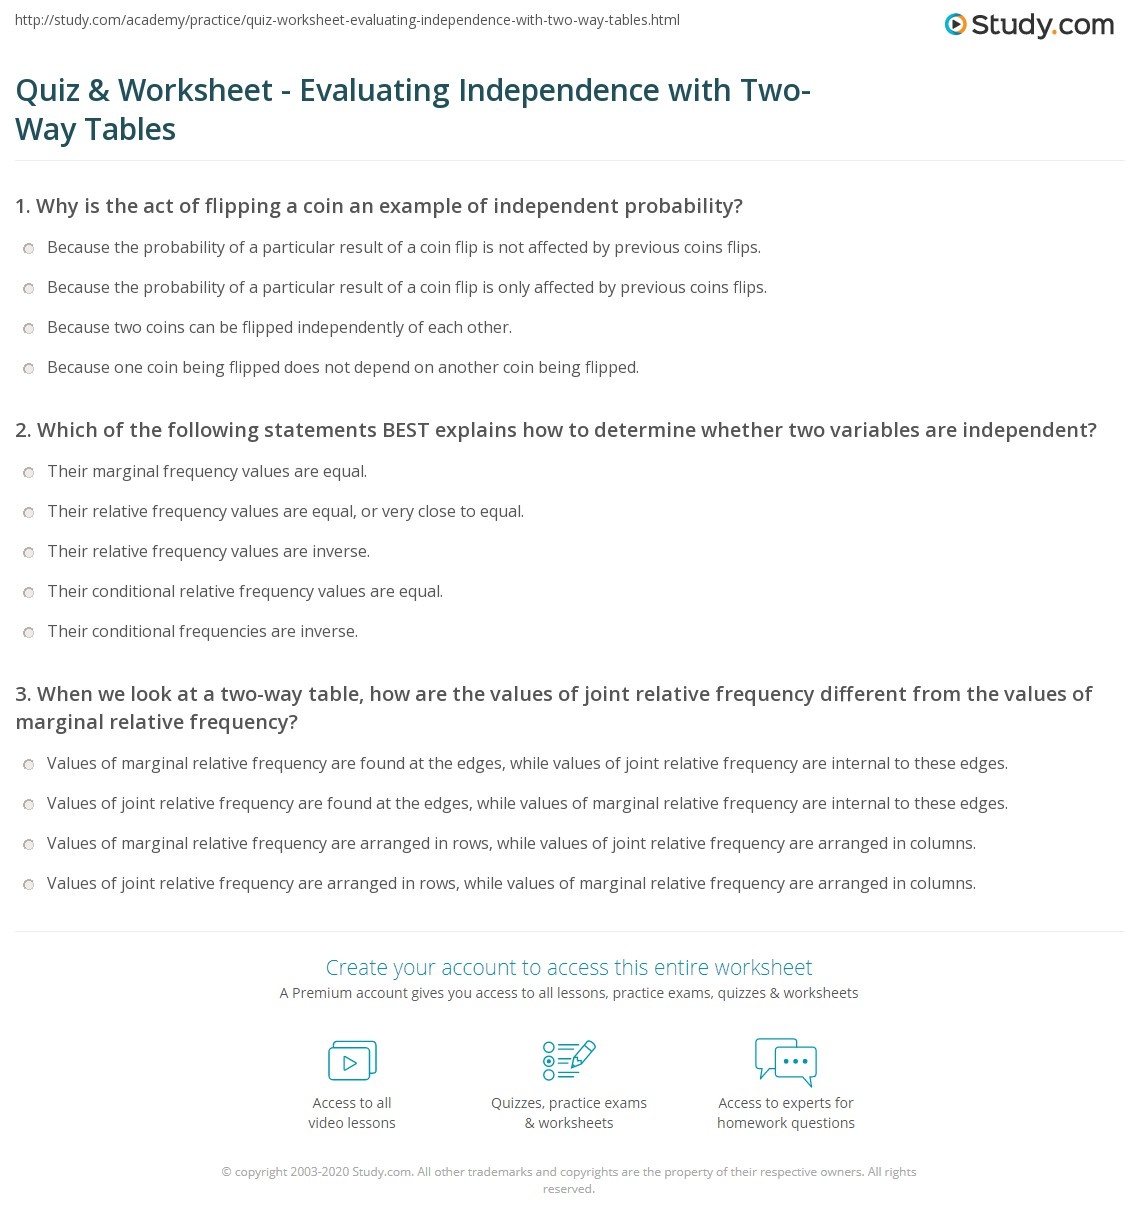 Quiz Worksheet Evaluating Independence With Two Way Tables